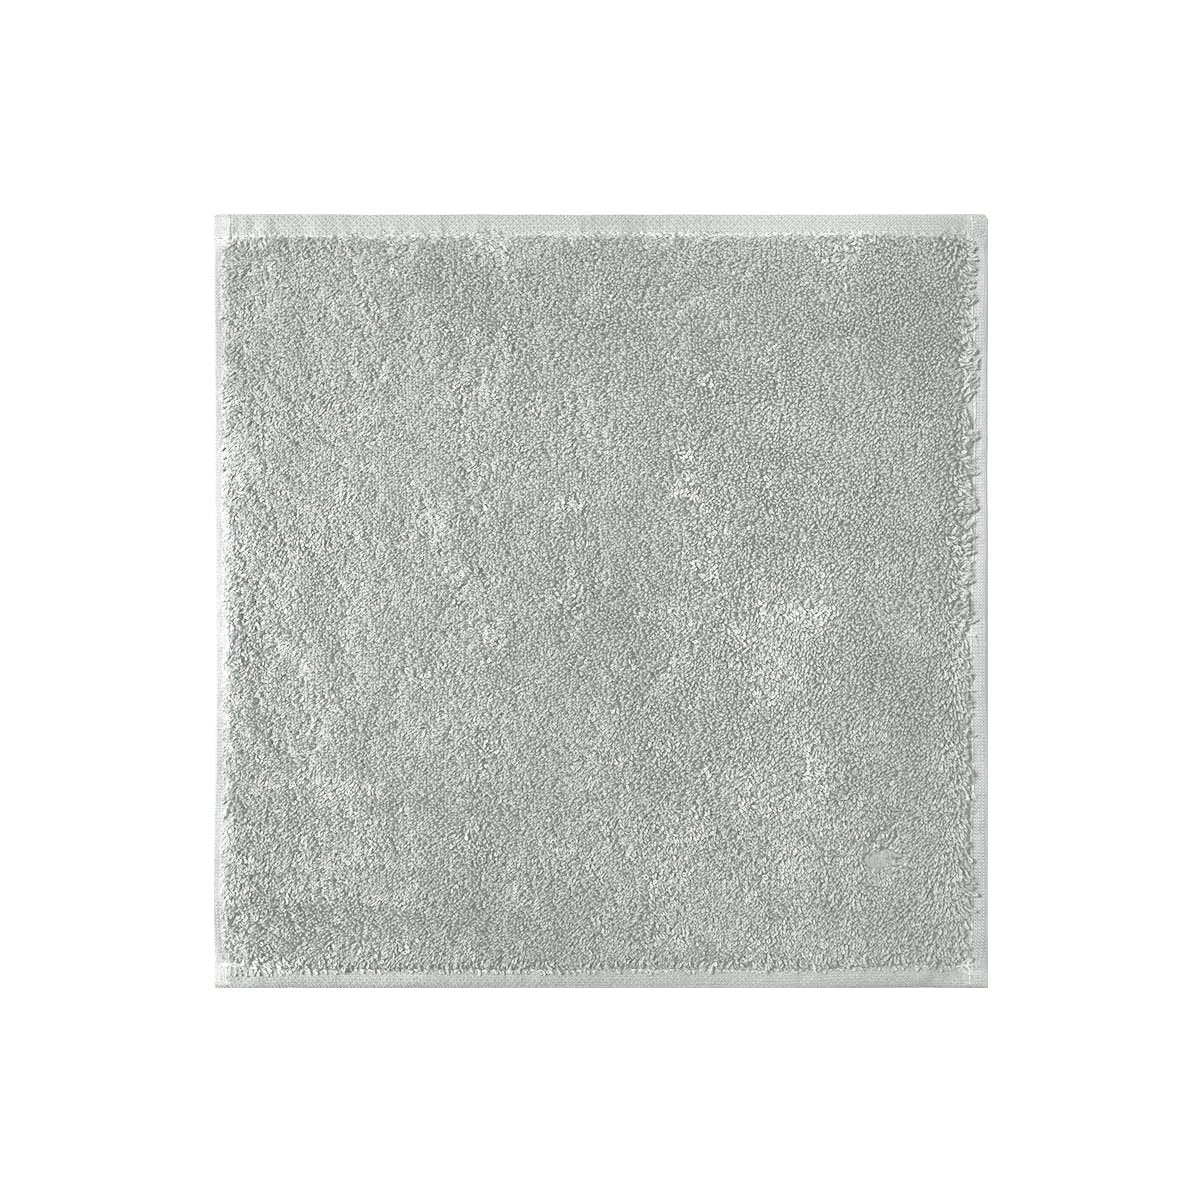 Etoile Platine Bath Collection by Yves Delorme | Fig Linens - Gray bath linen, wash cloth